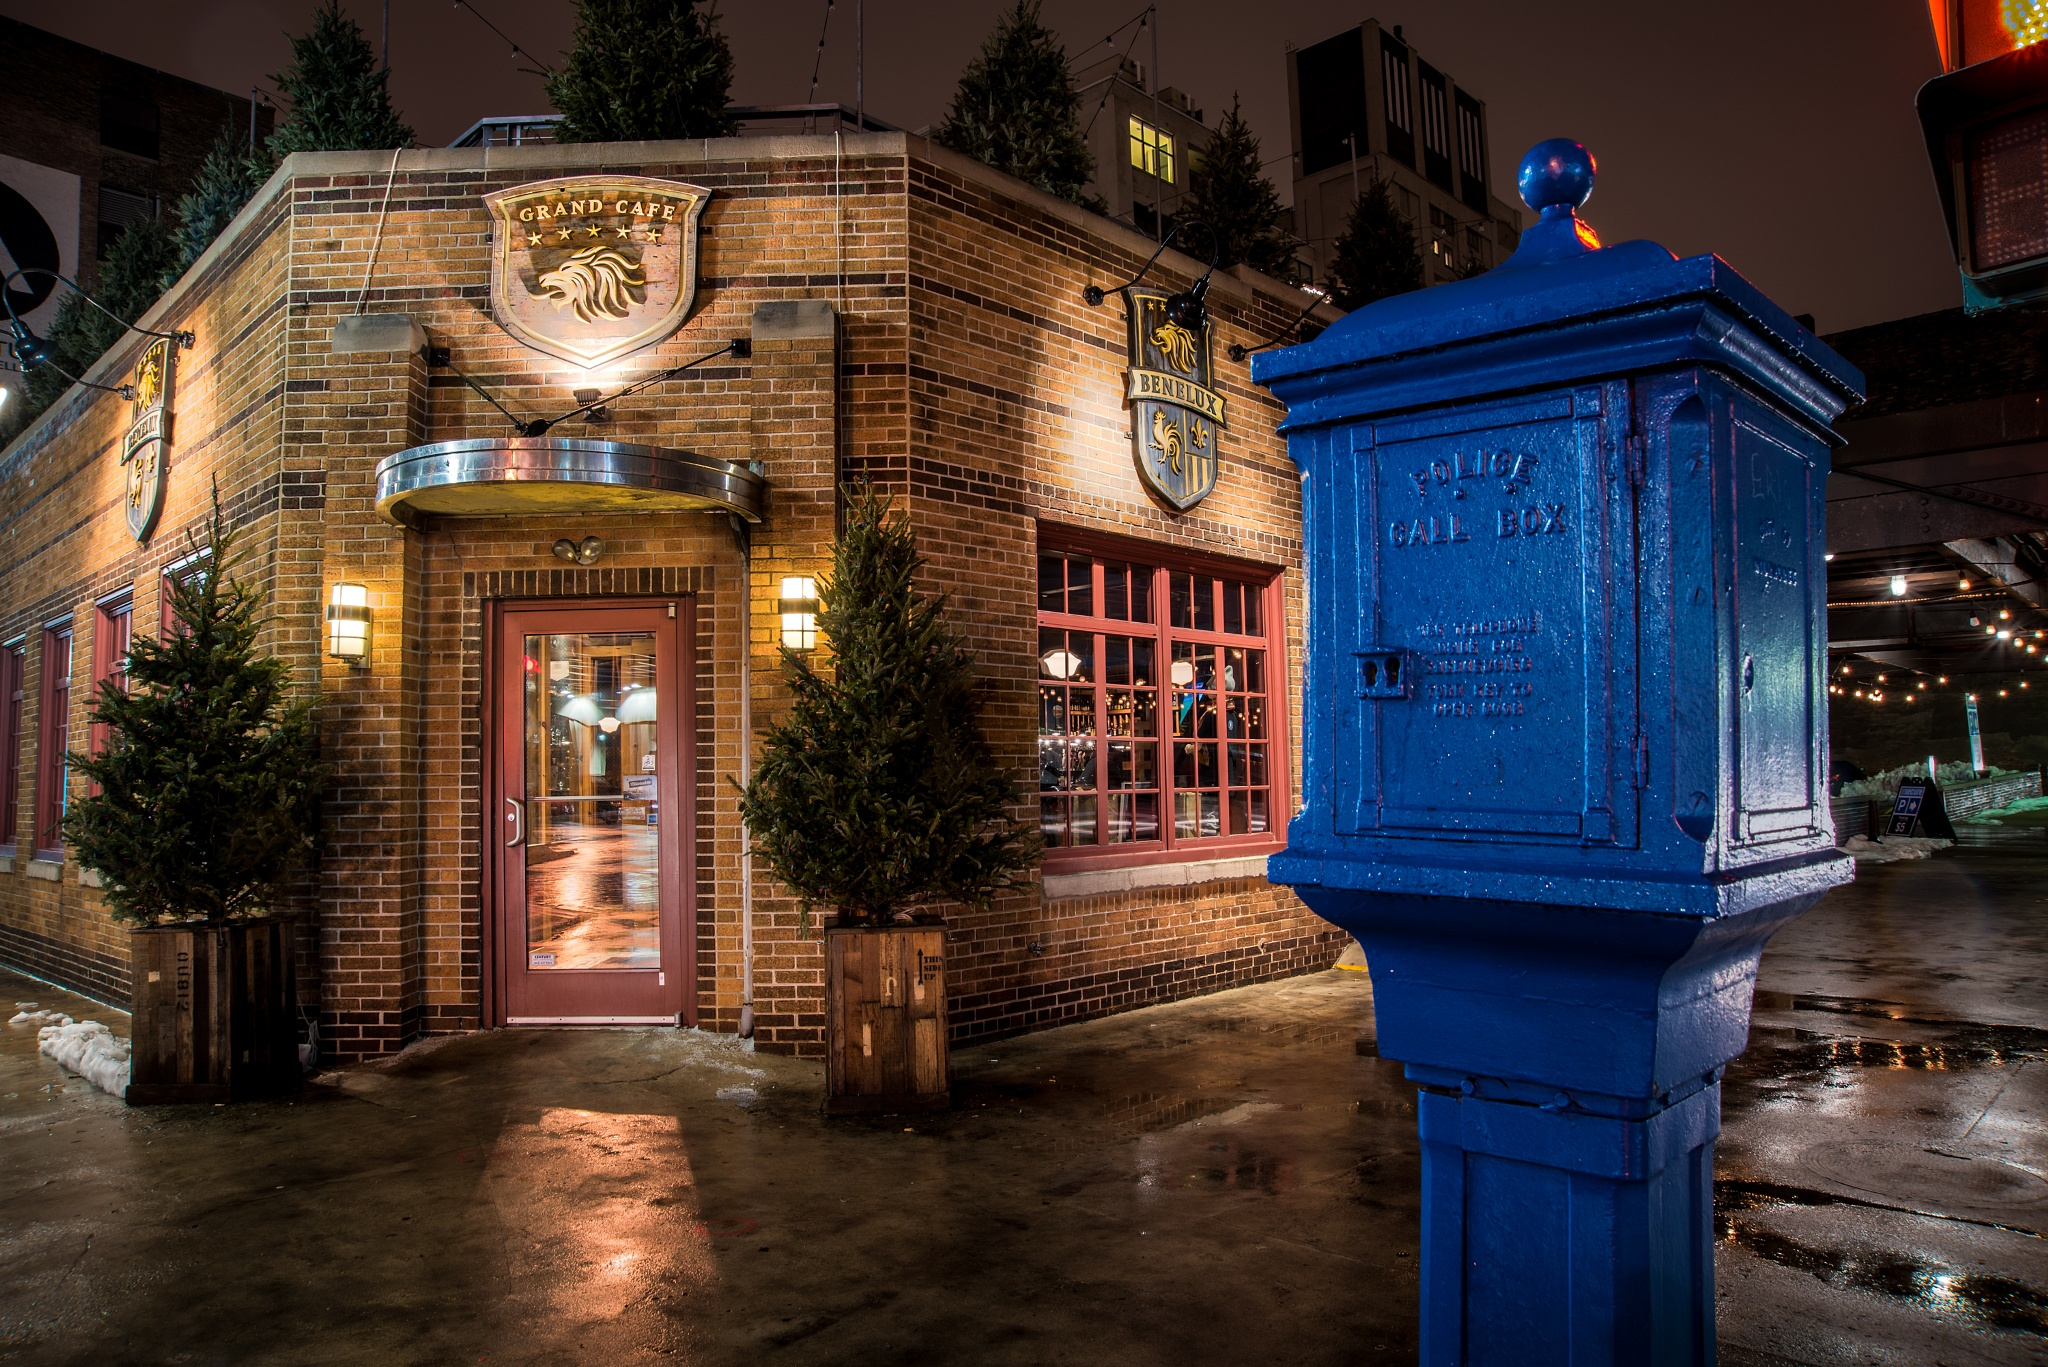 Grand Cafe Benelux and Call Box by William Rieselbach